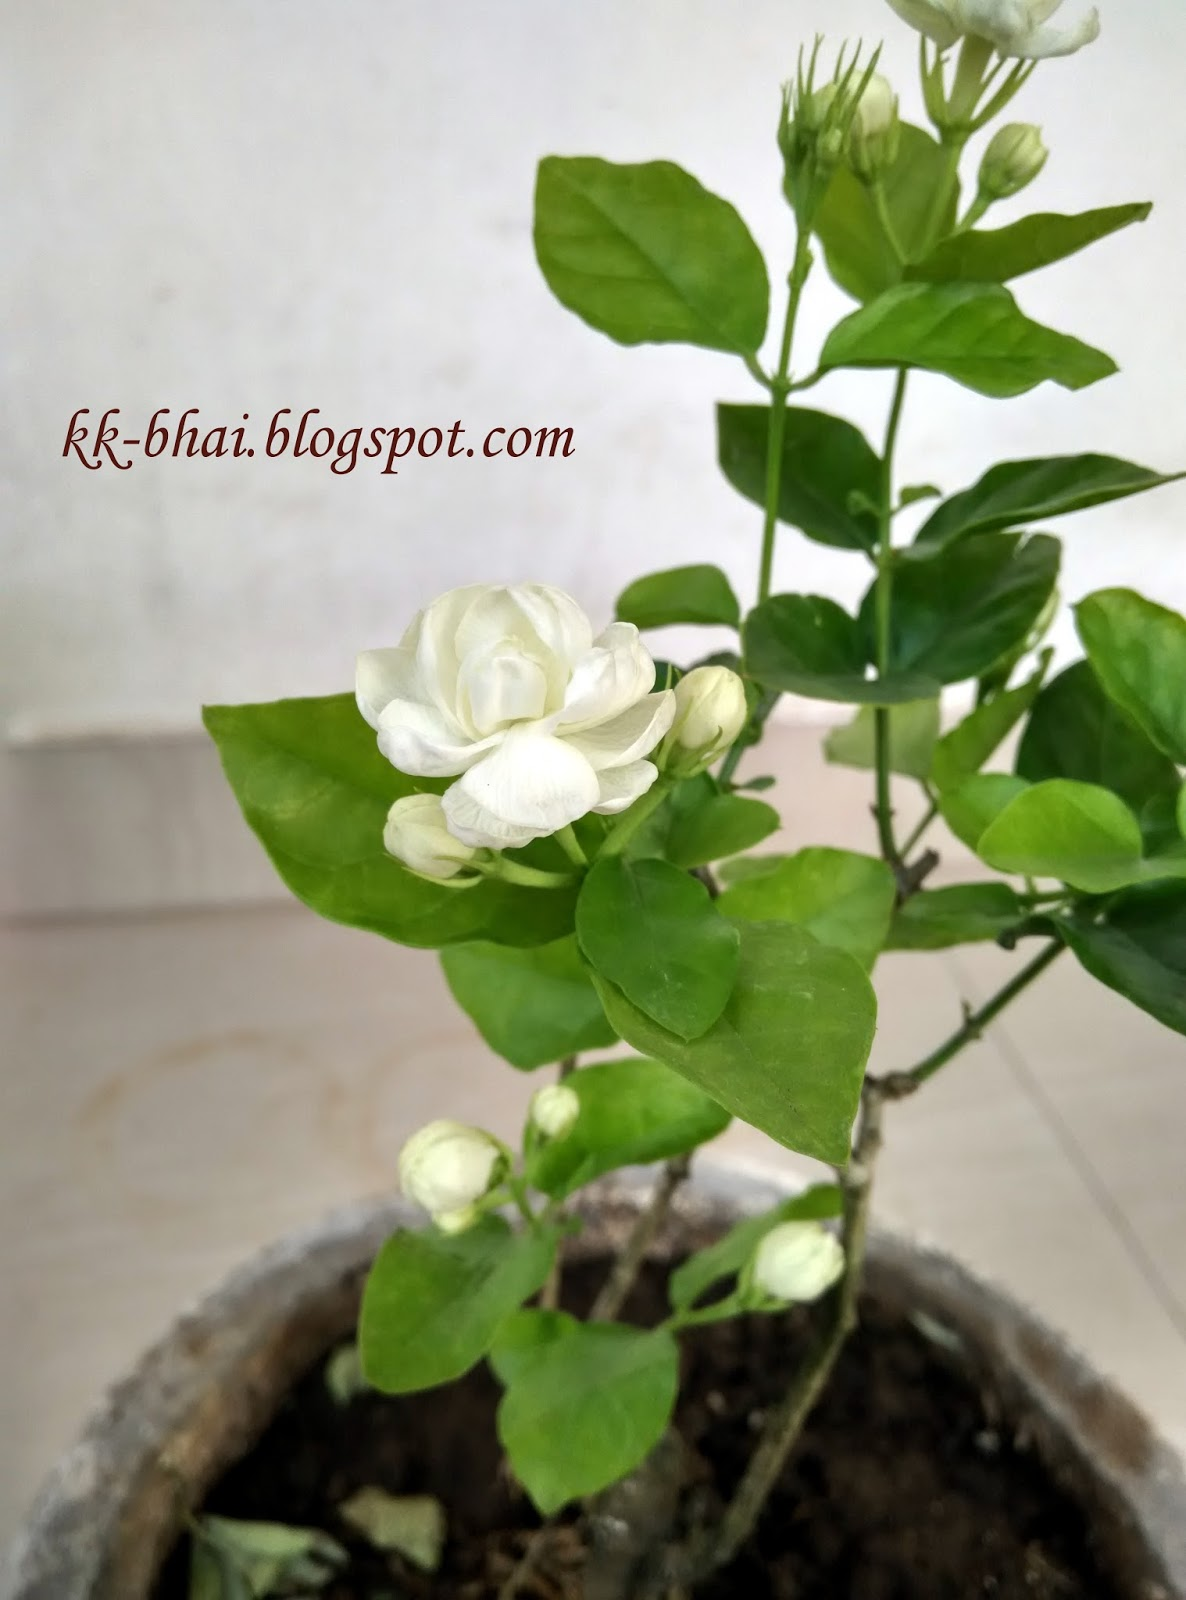 Puja Flowers And Other Things Used In Puja Hindu Worship